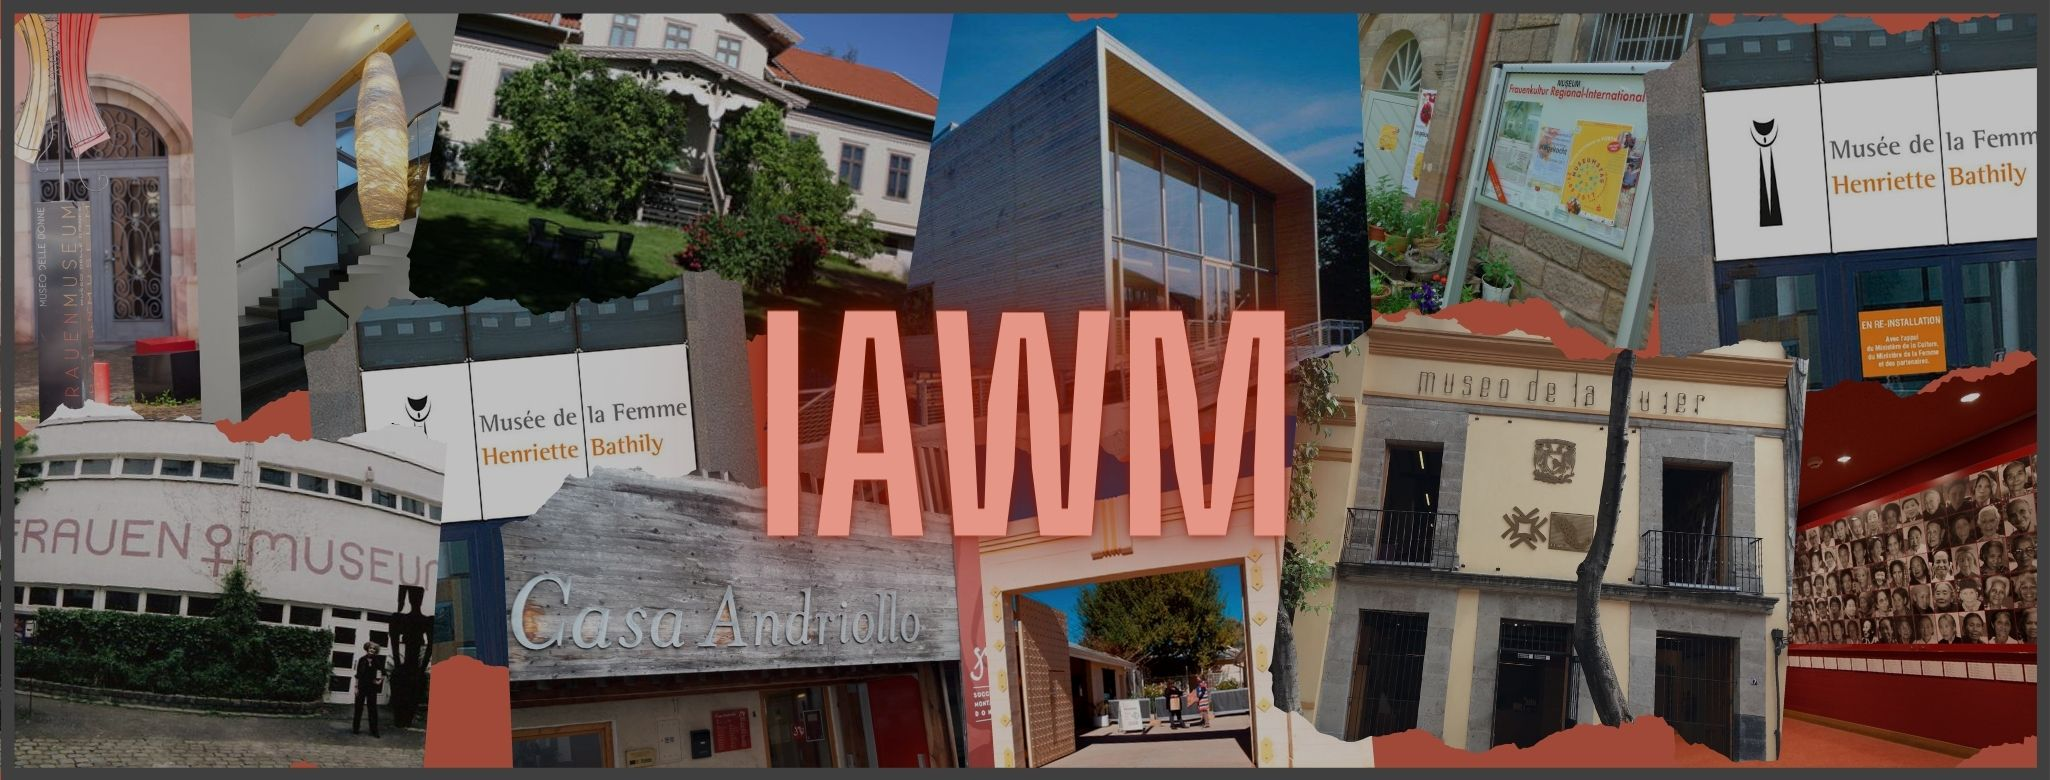 Photographs of women's museums in a collage surrounding IAWM